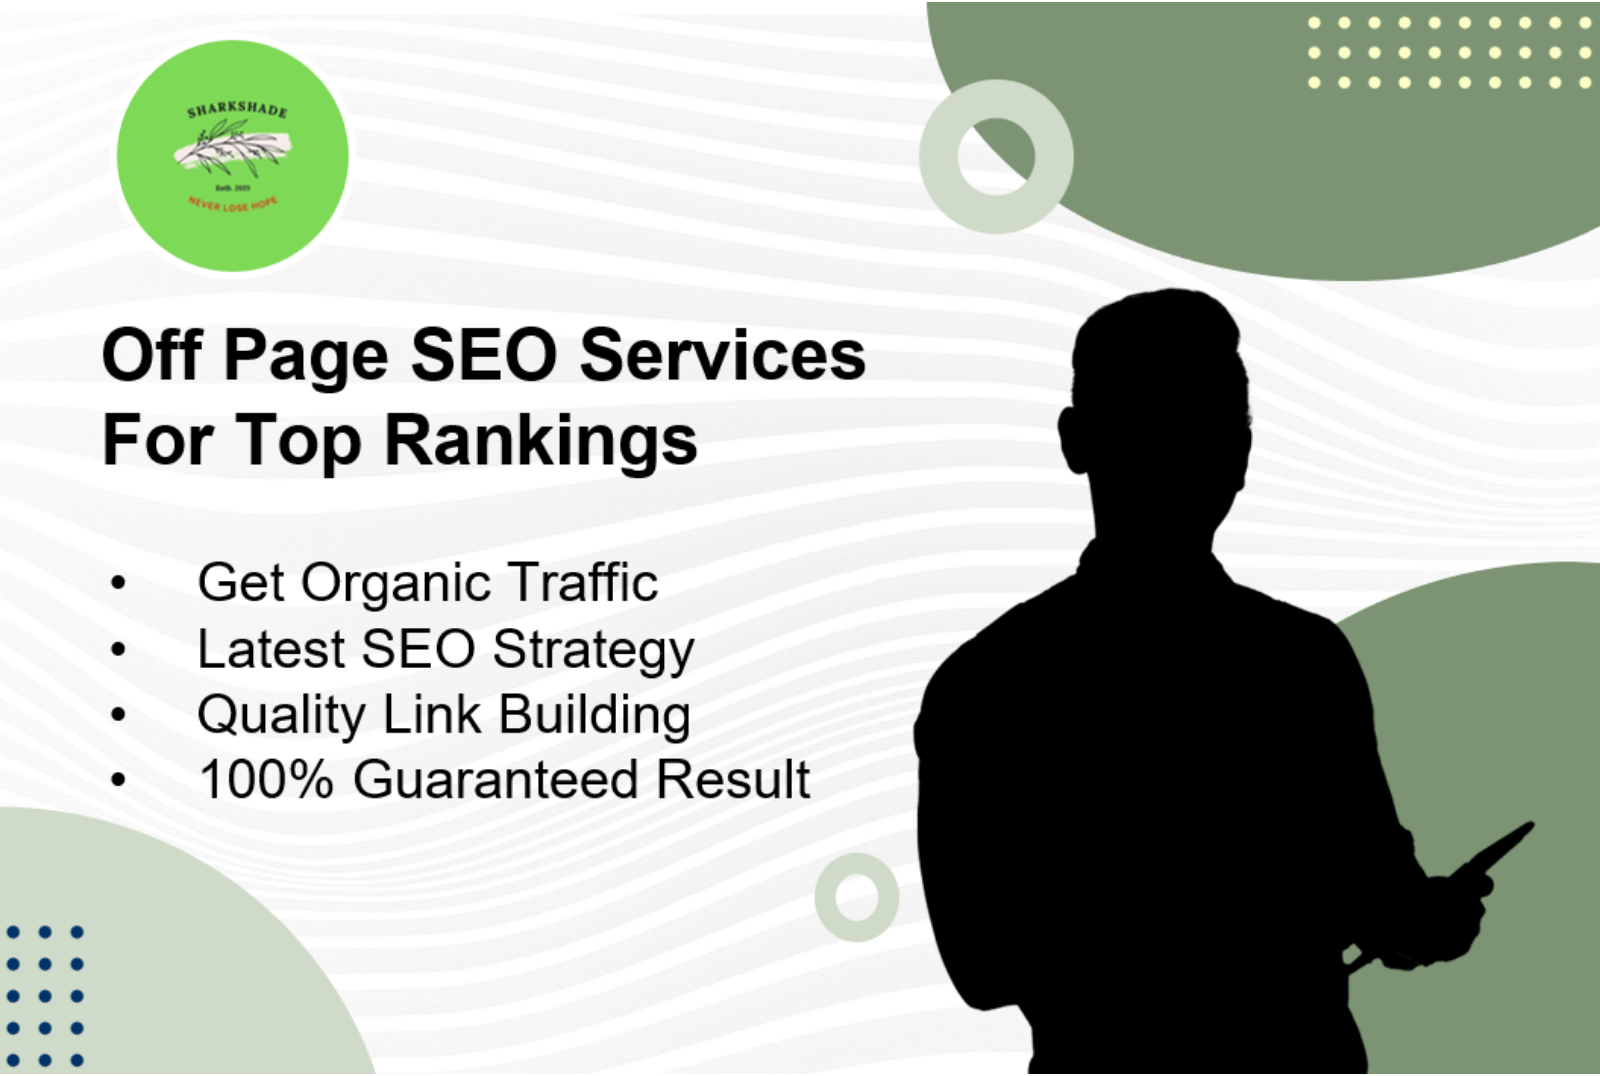 Boost Google Ranking By Monthly White Hat Off-Page SEO Services